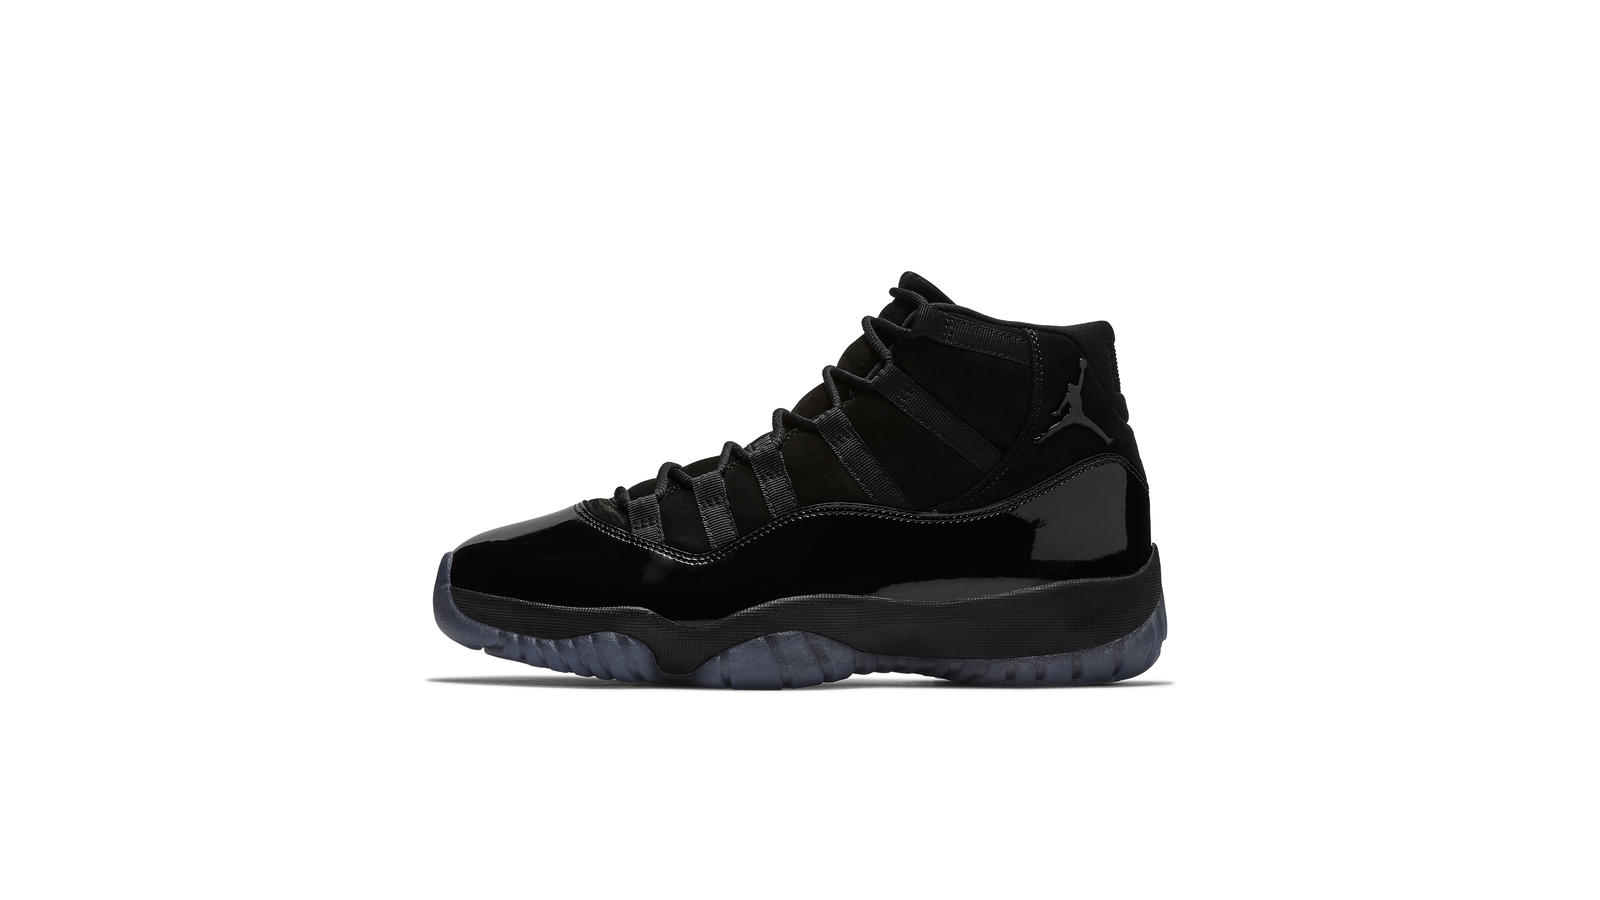 324ce75c687ad7 Air Jordan XI Cap and Gown - Nike News